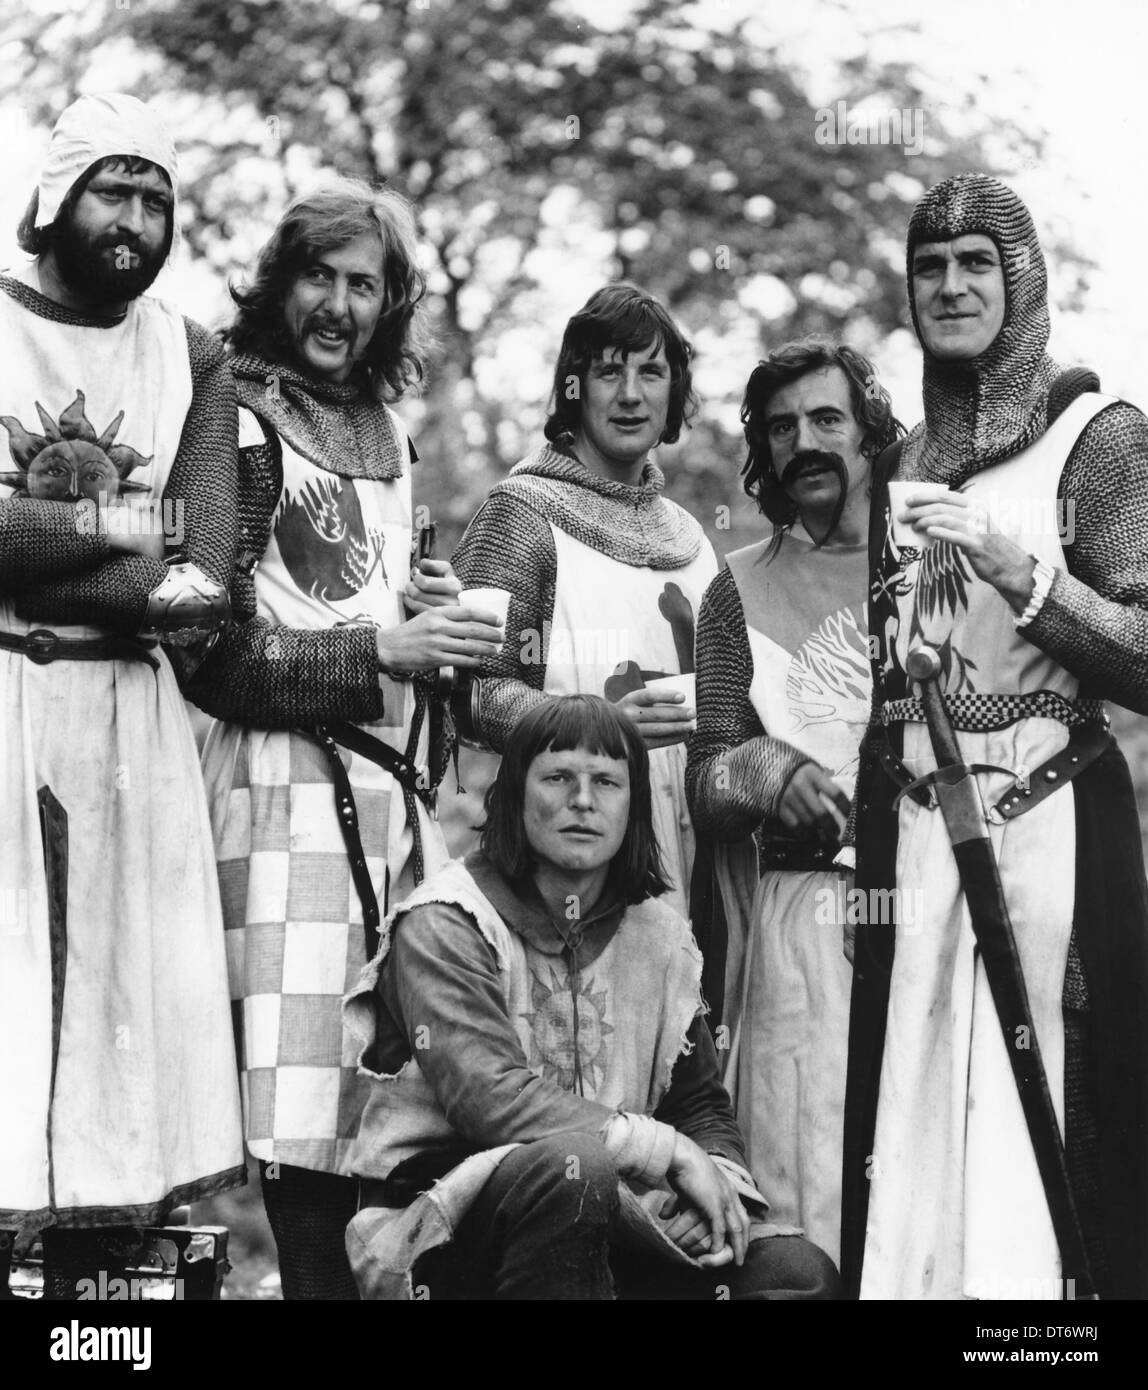 Monty Python The Royal Philharmonic Orchestra Goes To The Bathroom: JOHN CLEESE MICHAEL PALIN TERRY JONES ERIC IDLE GRAHAM